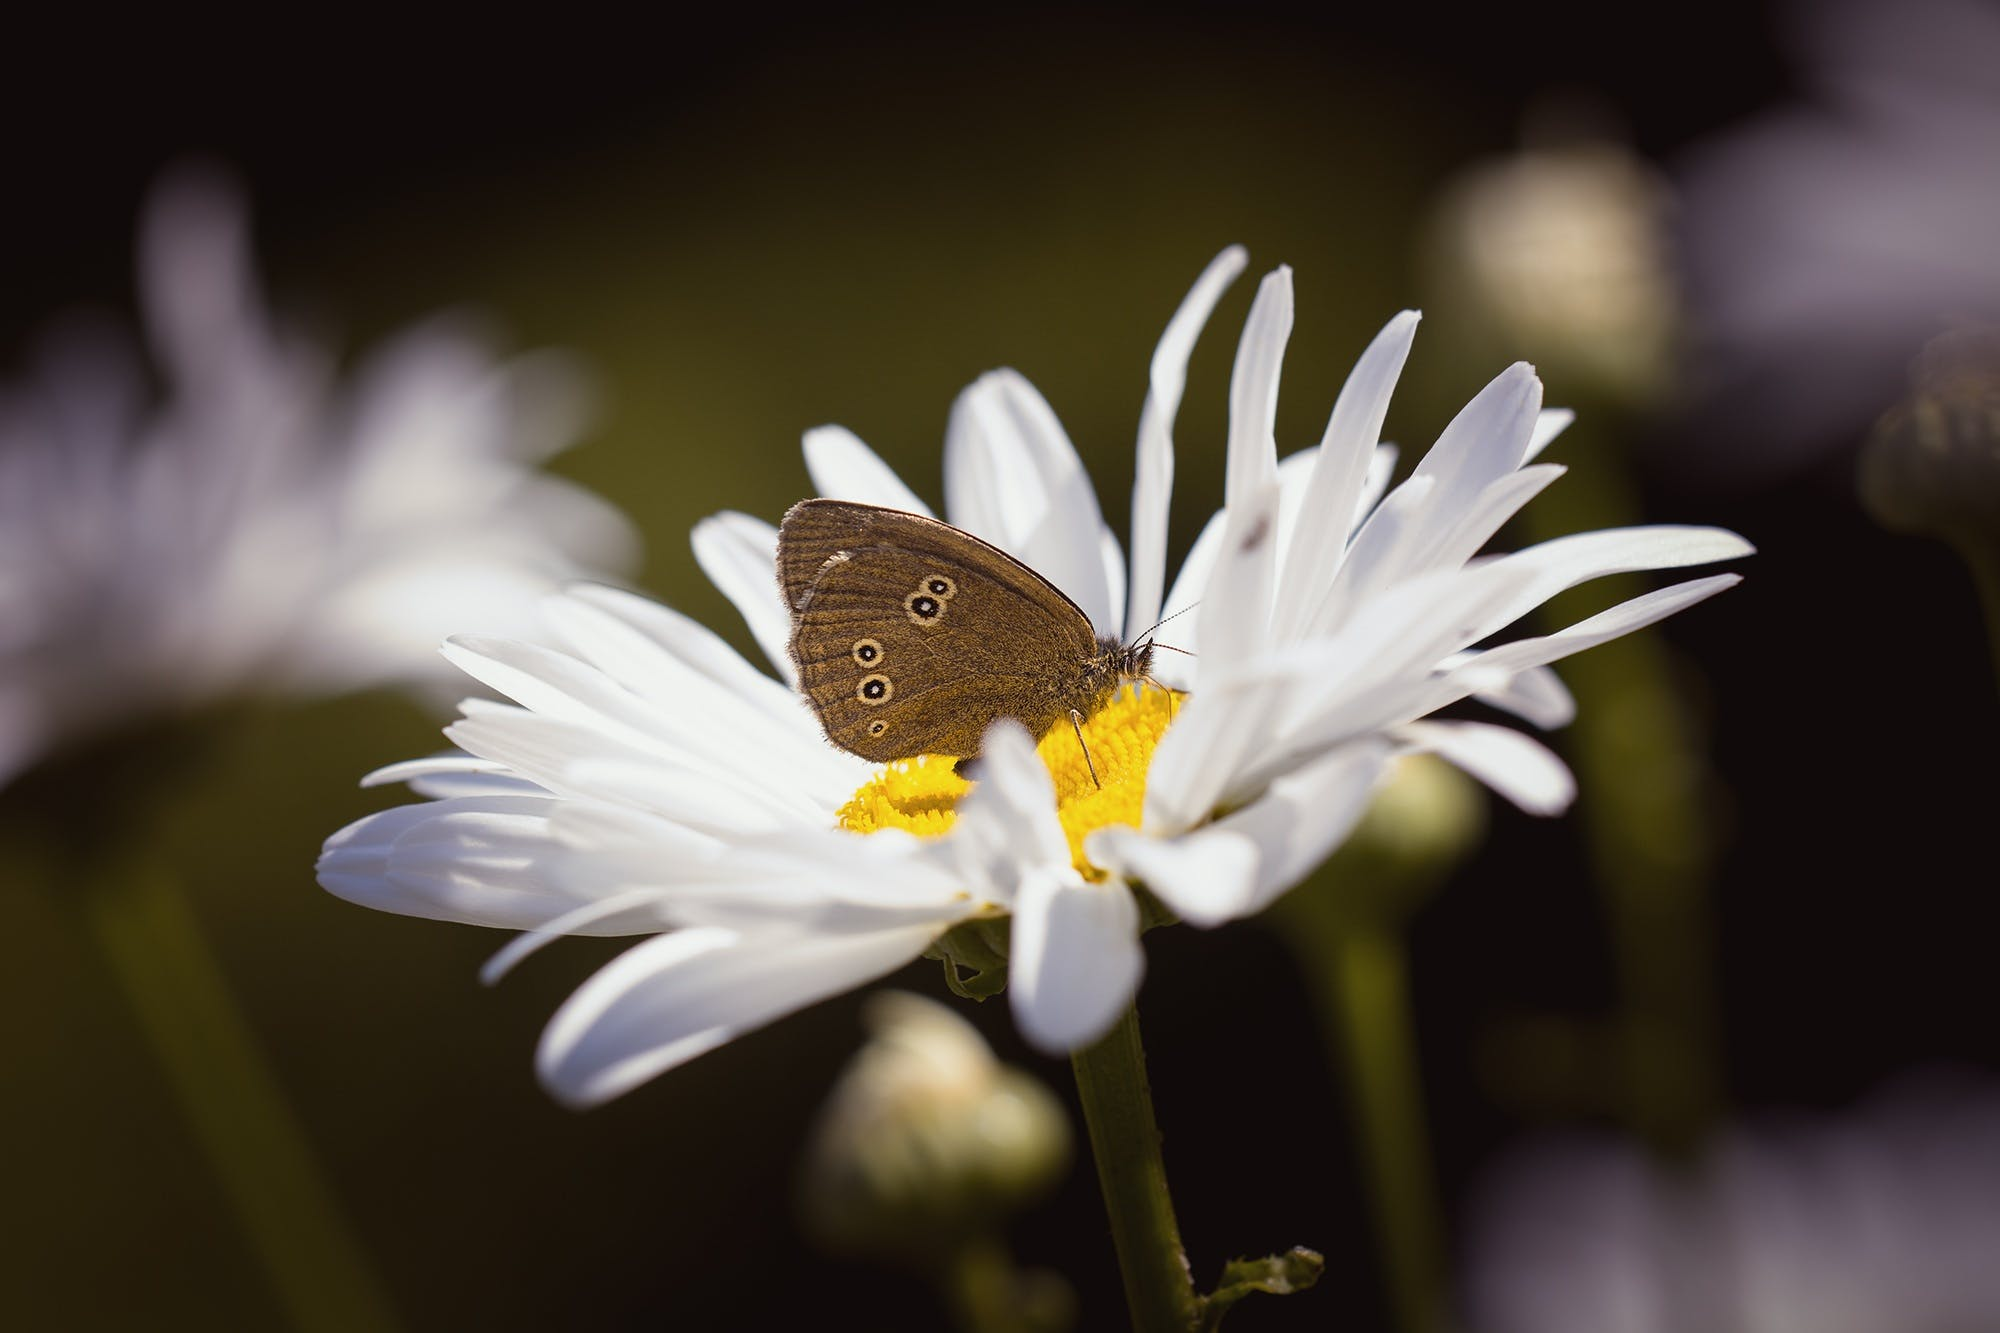 Brown Butterfly on Daisy